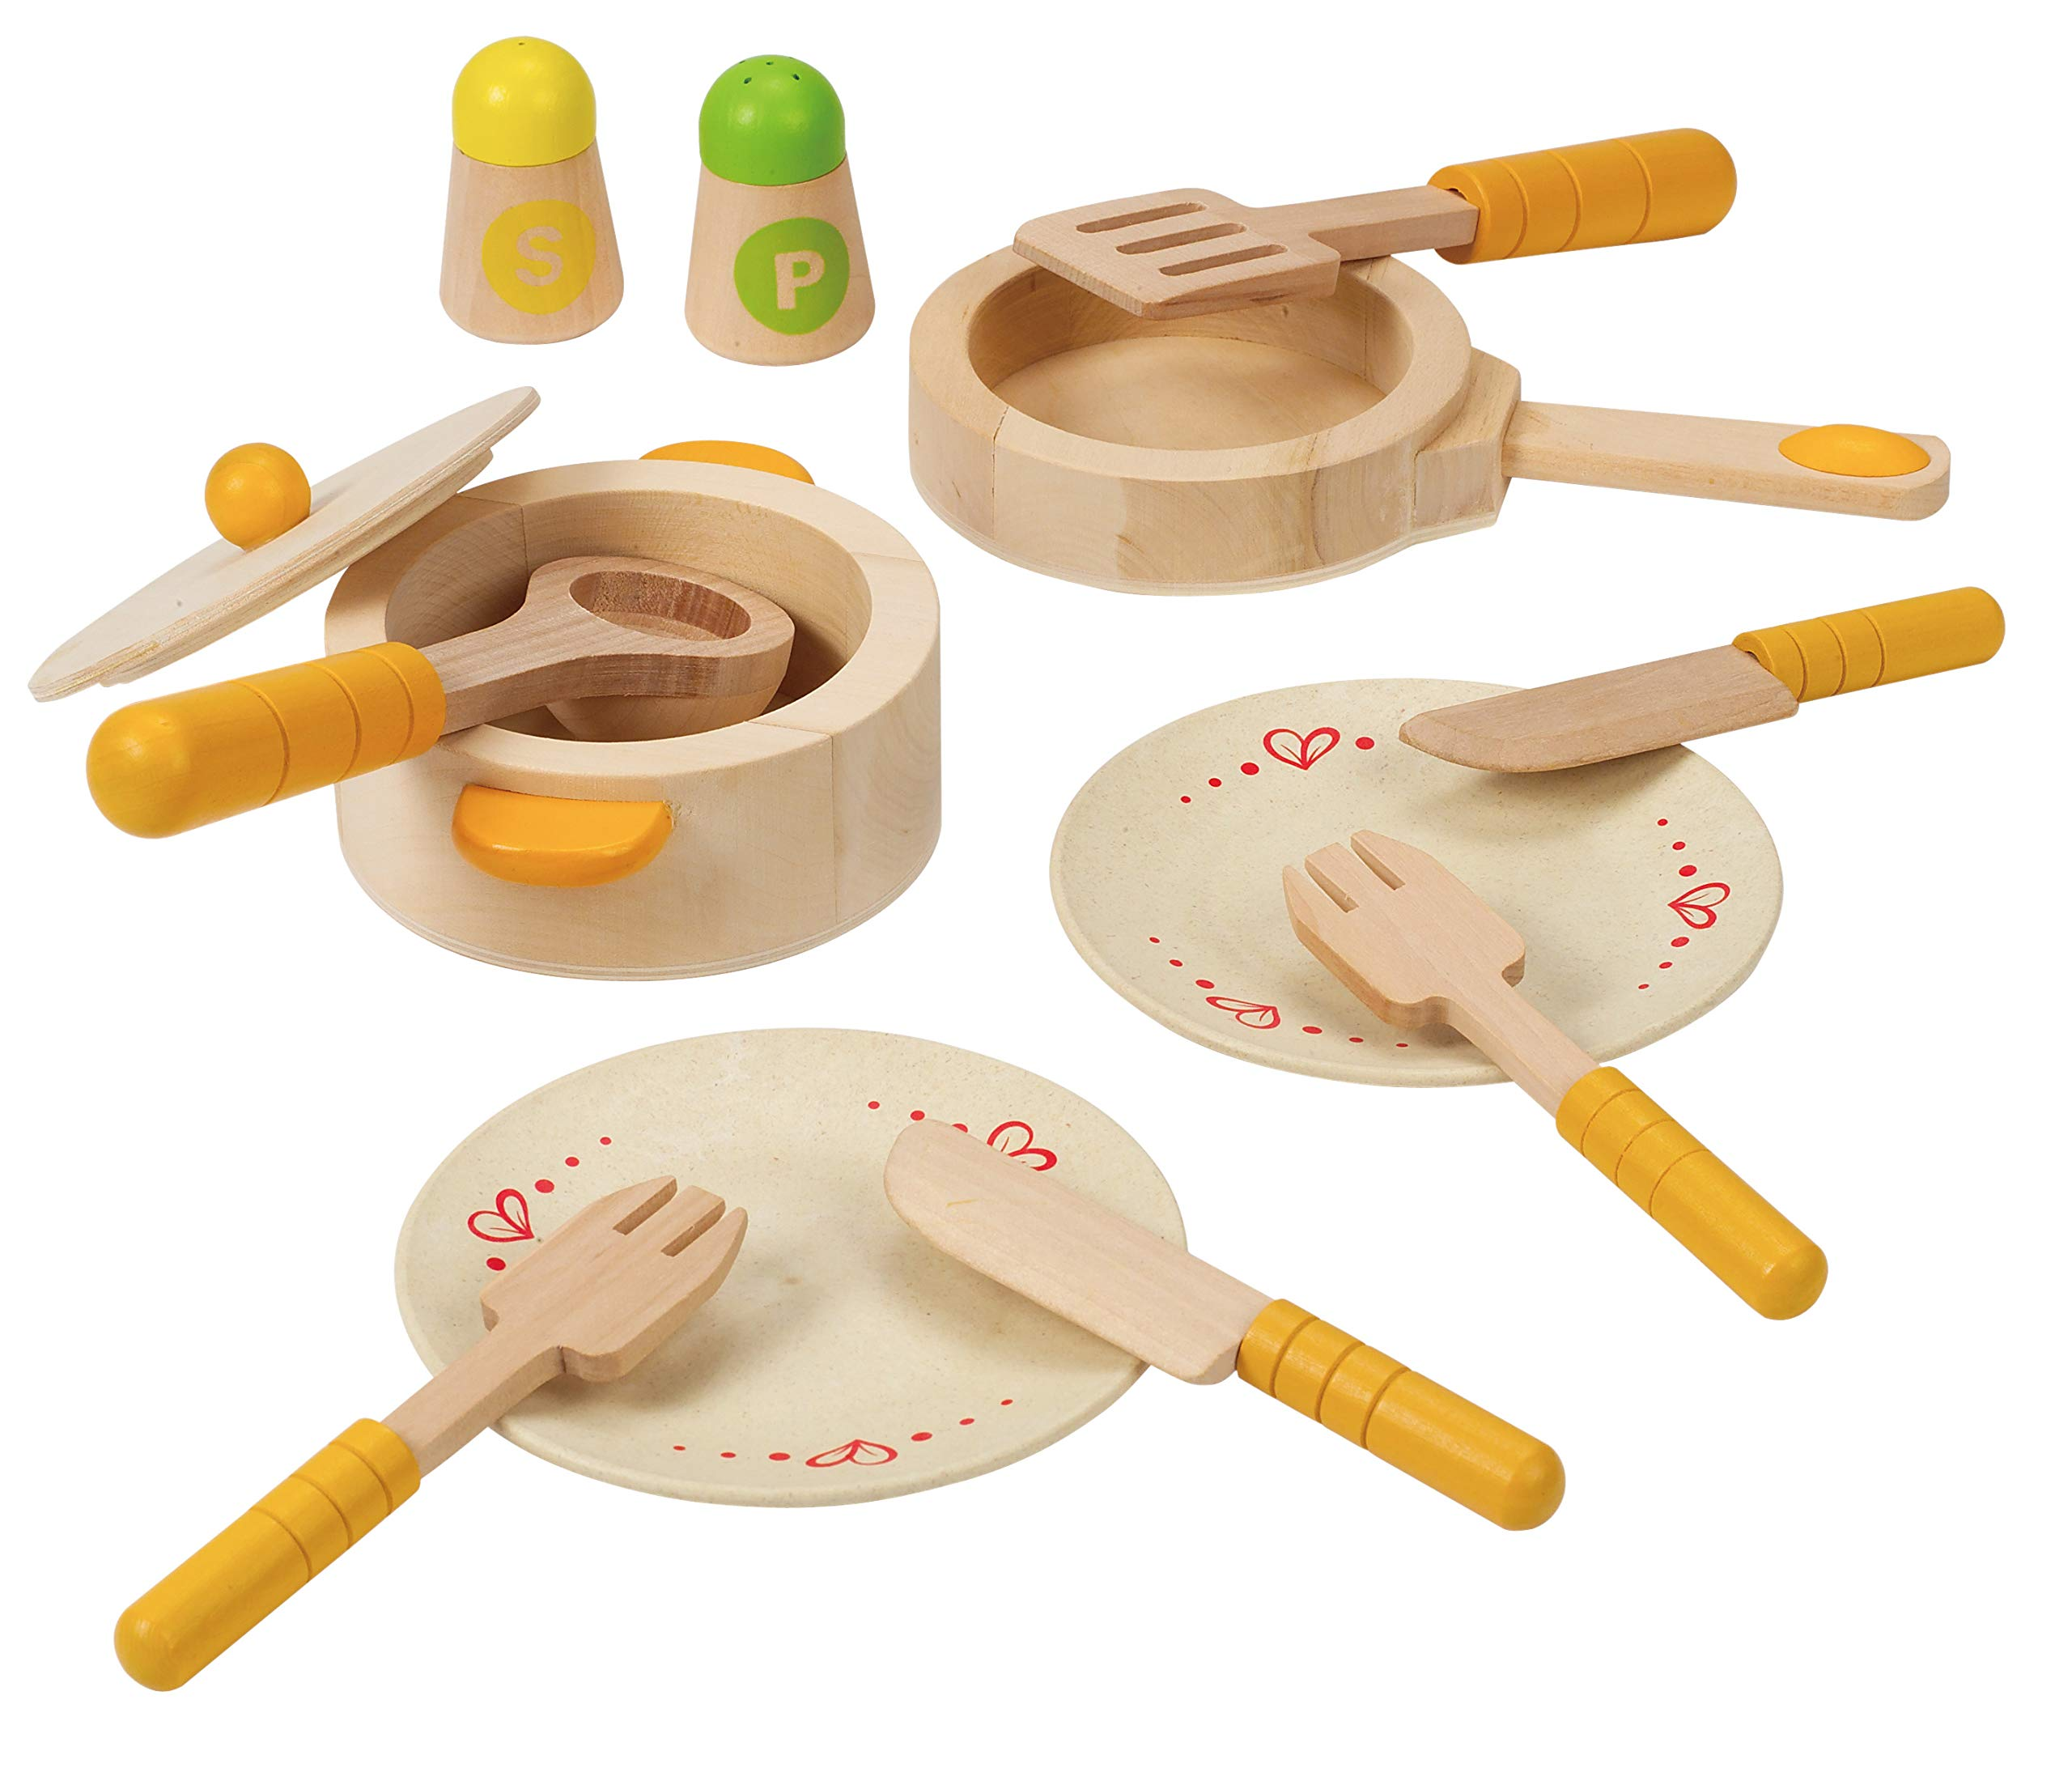 Hape Gourmet Play Kitchen Starter Accessories Wooden Play Set by Hape